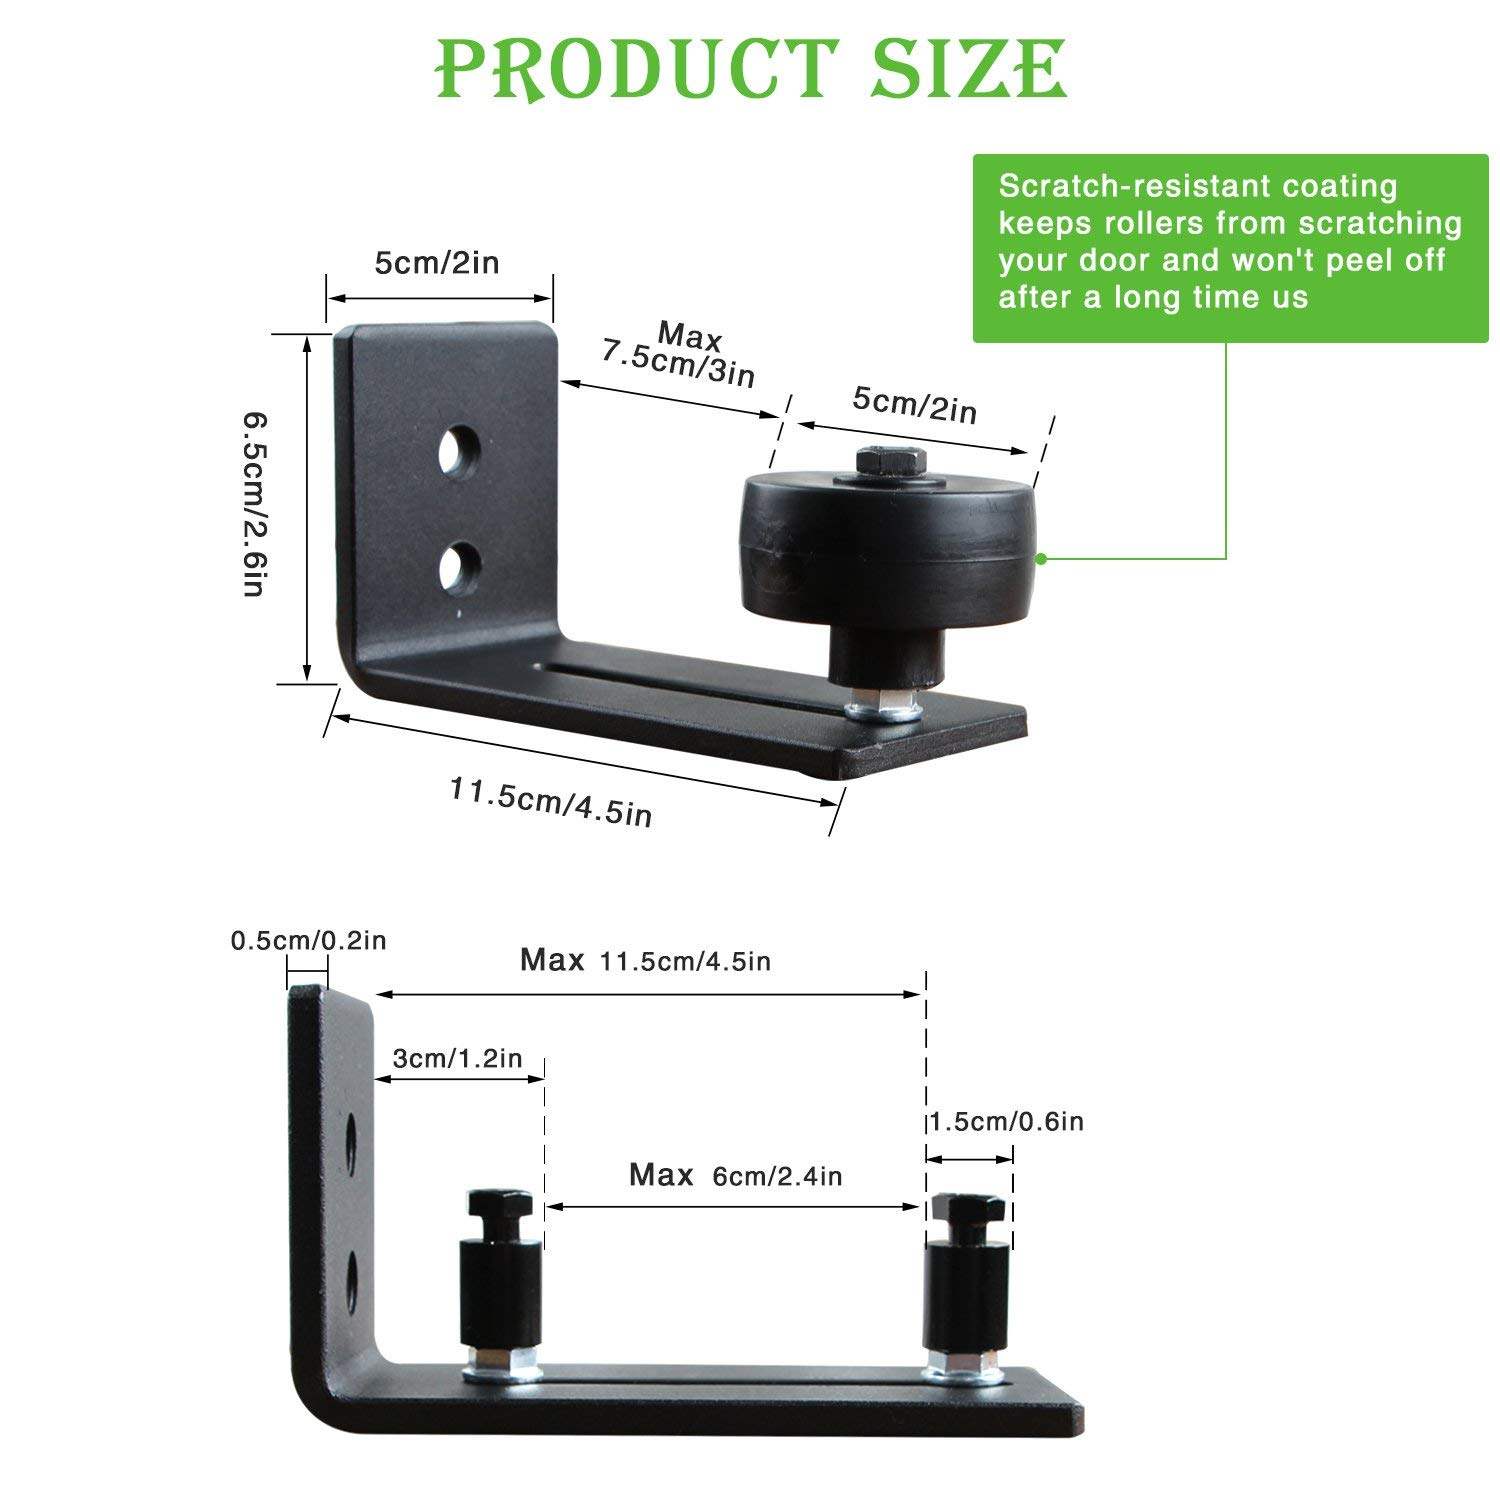 Ultra Smooth Fully Adjustable Channel,Bottom Floor Guide for All Sliding Barn Door Hardware vocheer Barn Door Floor Guide,Wall Mounted Stay Roller Guides with 8 Different Setups